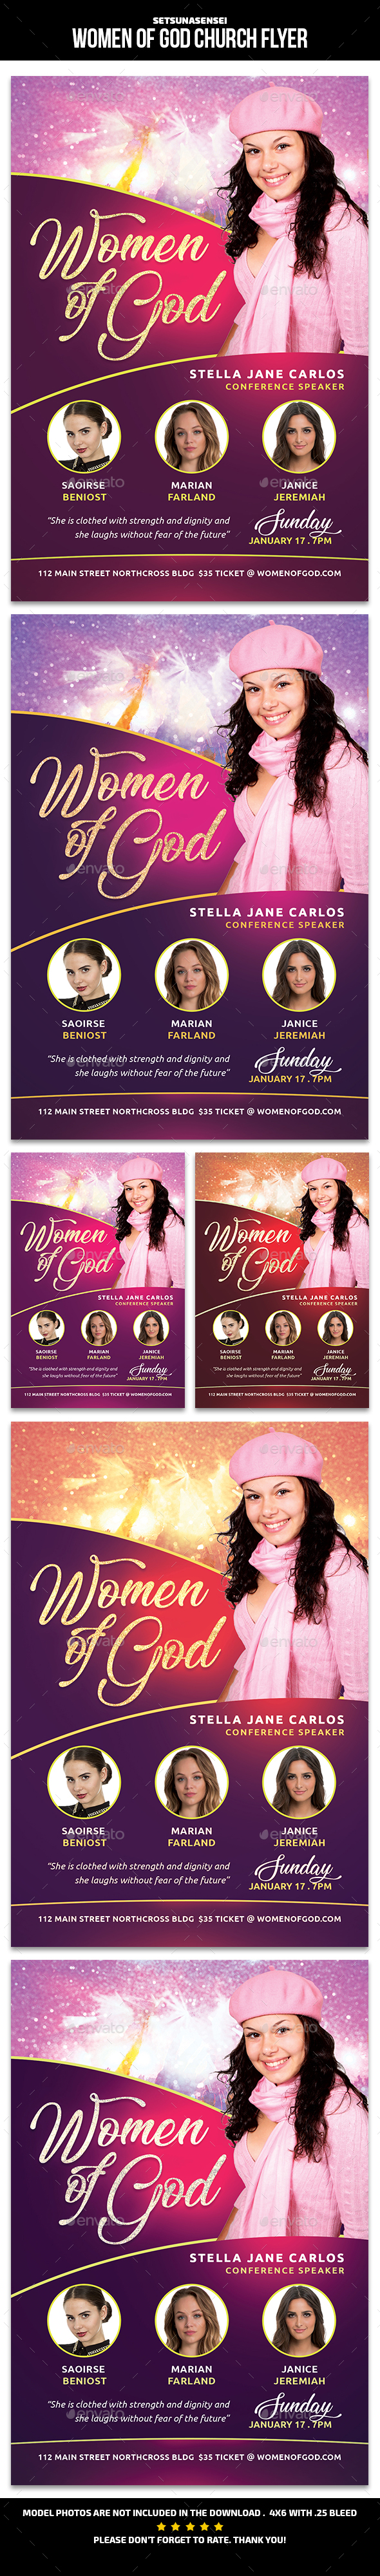 Women of God Church Flyer - Church Flyers